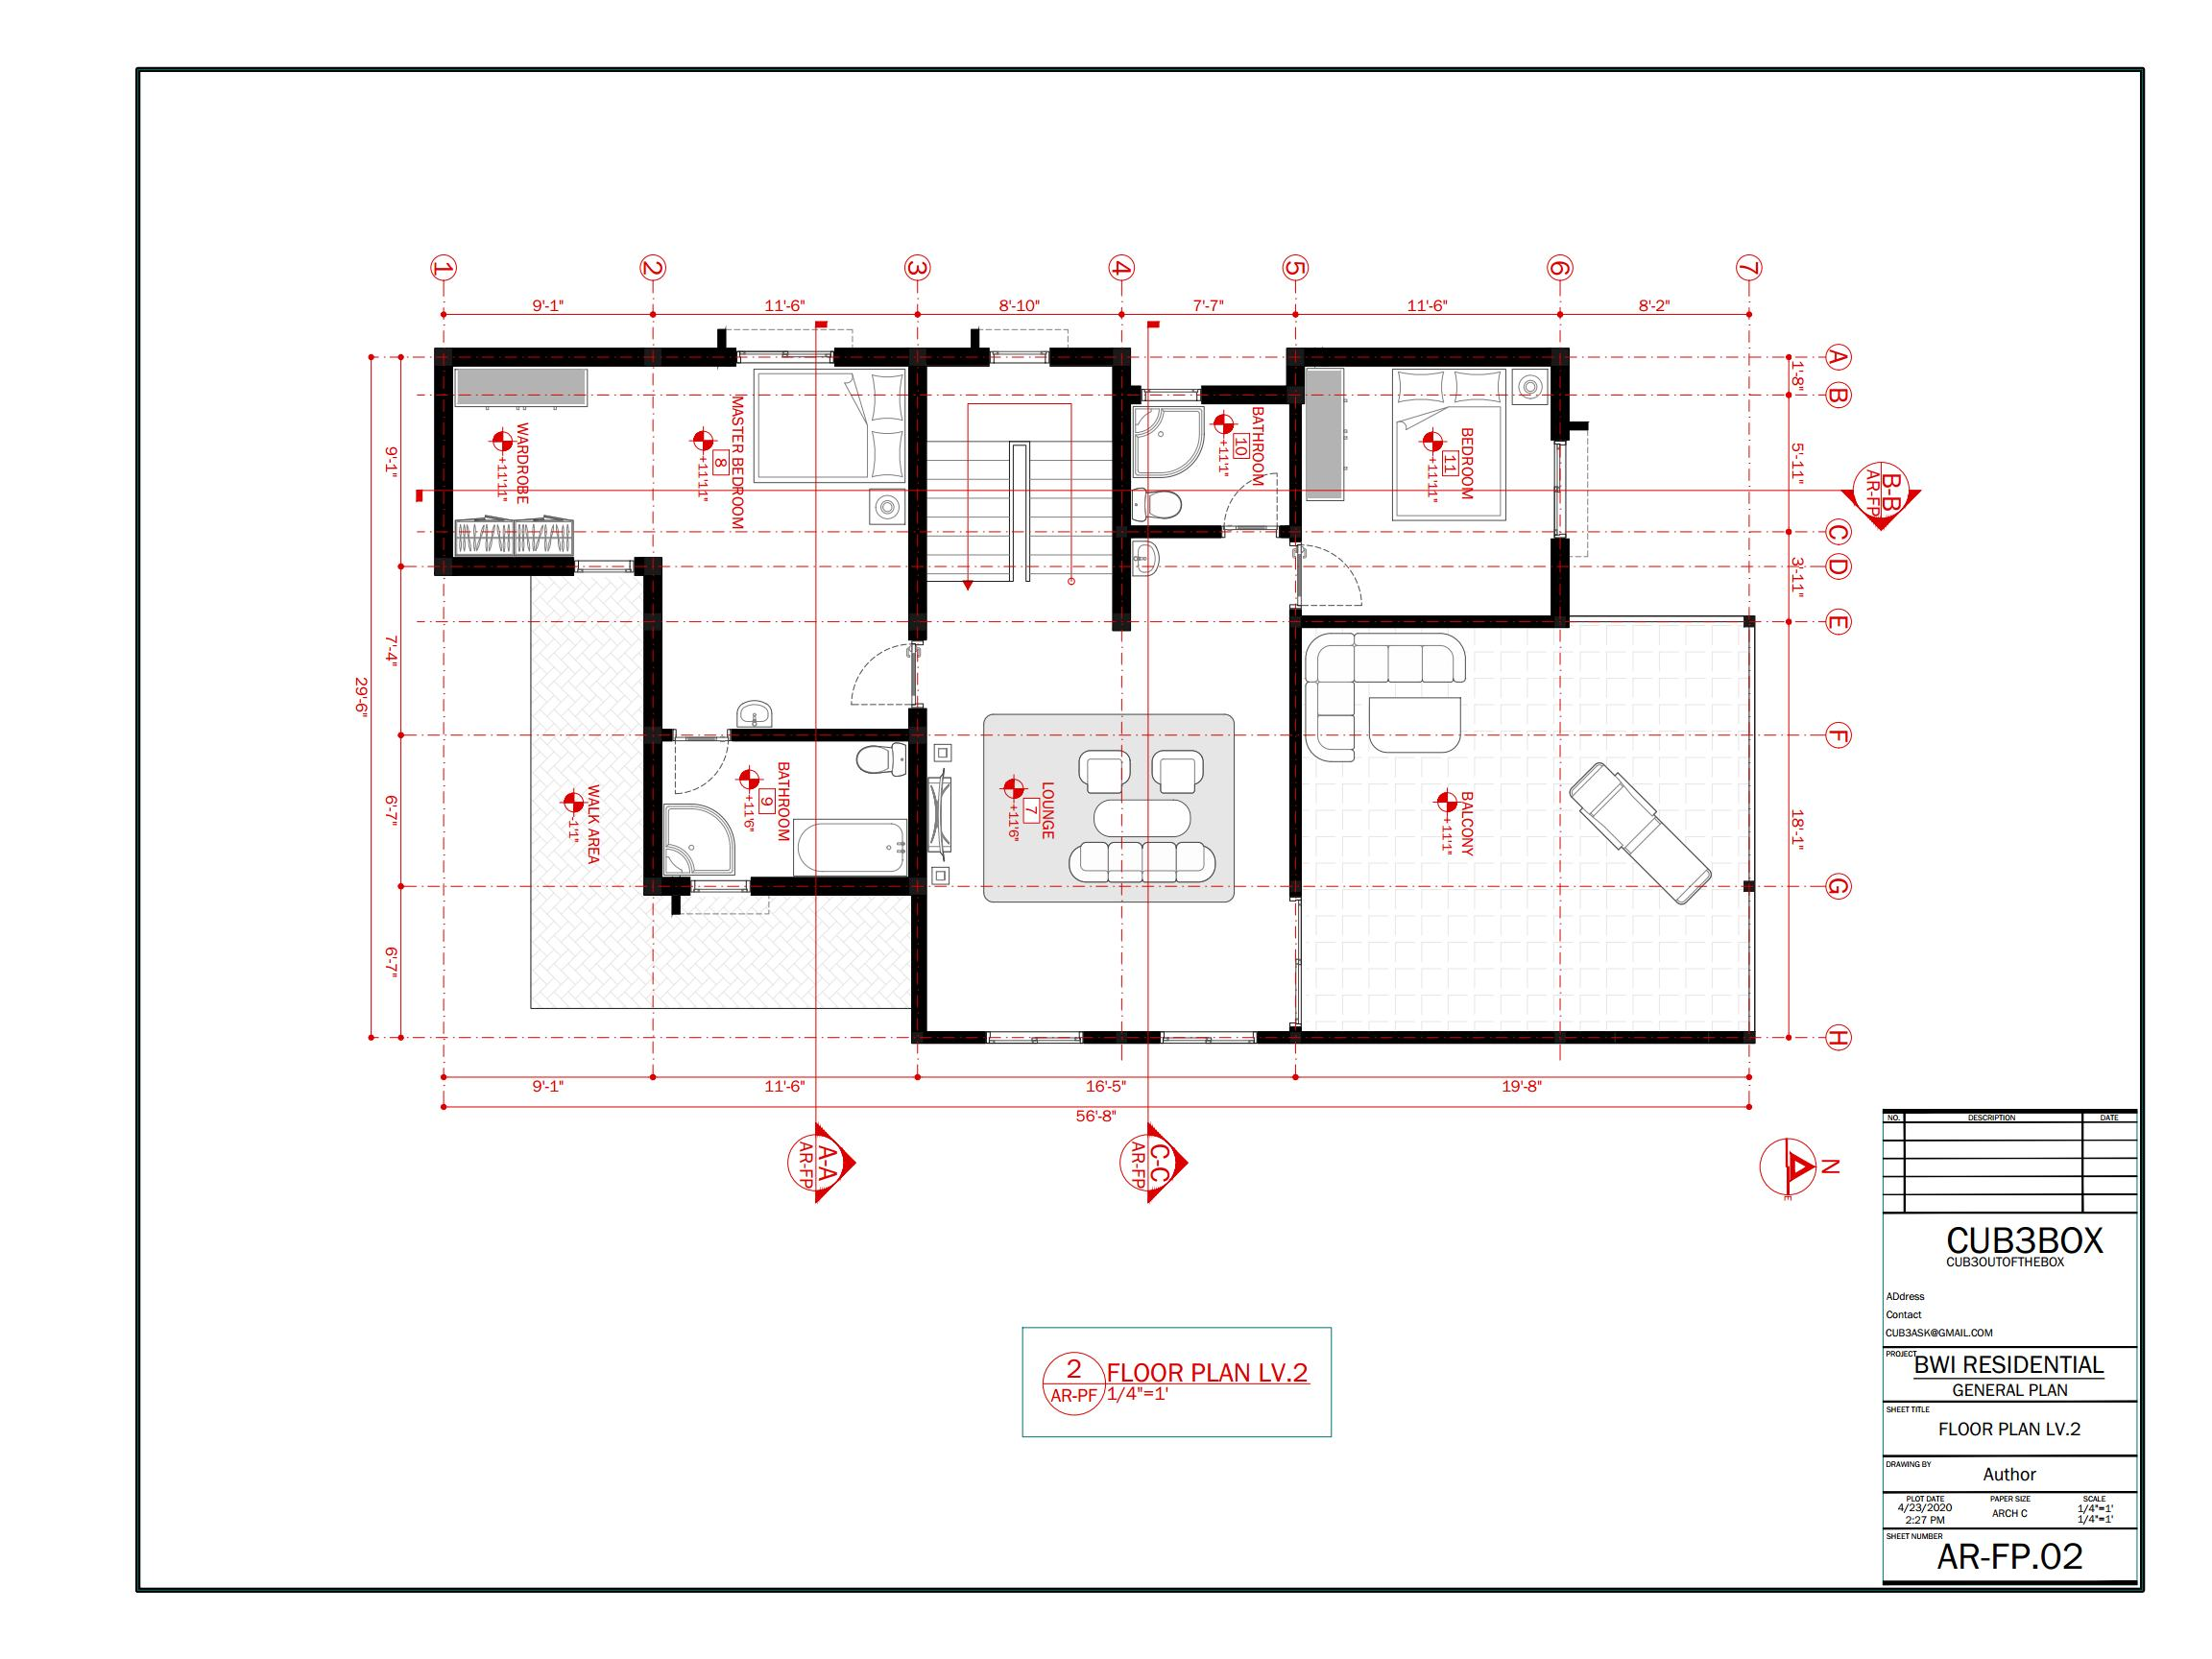 Residential Modern House Architecture Plan with floor plan